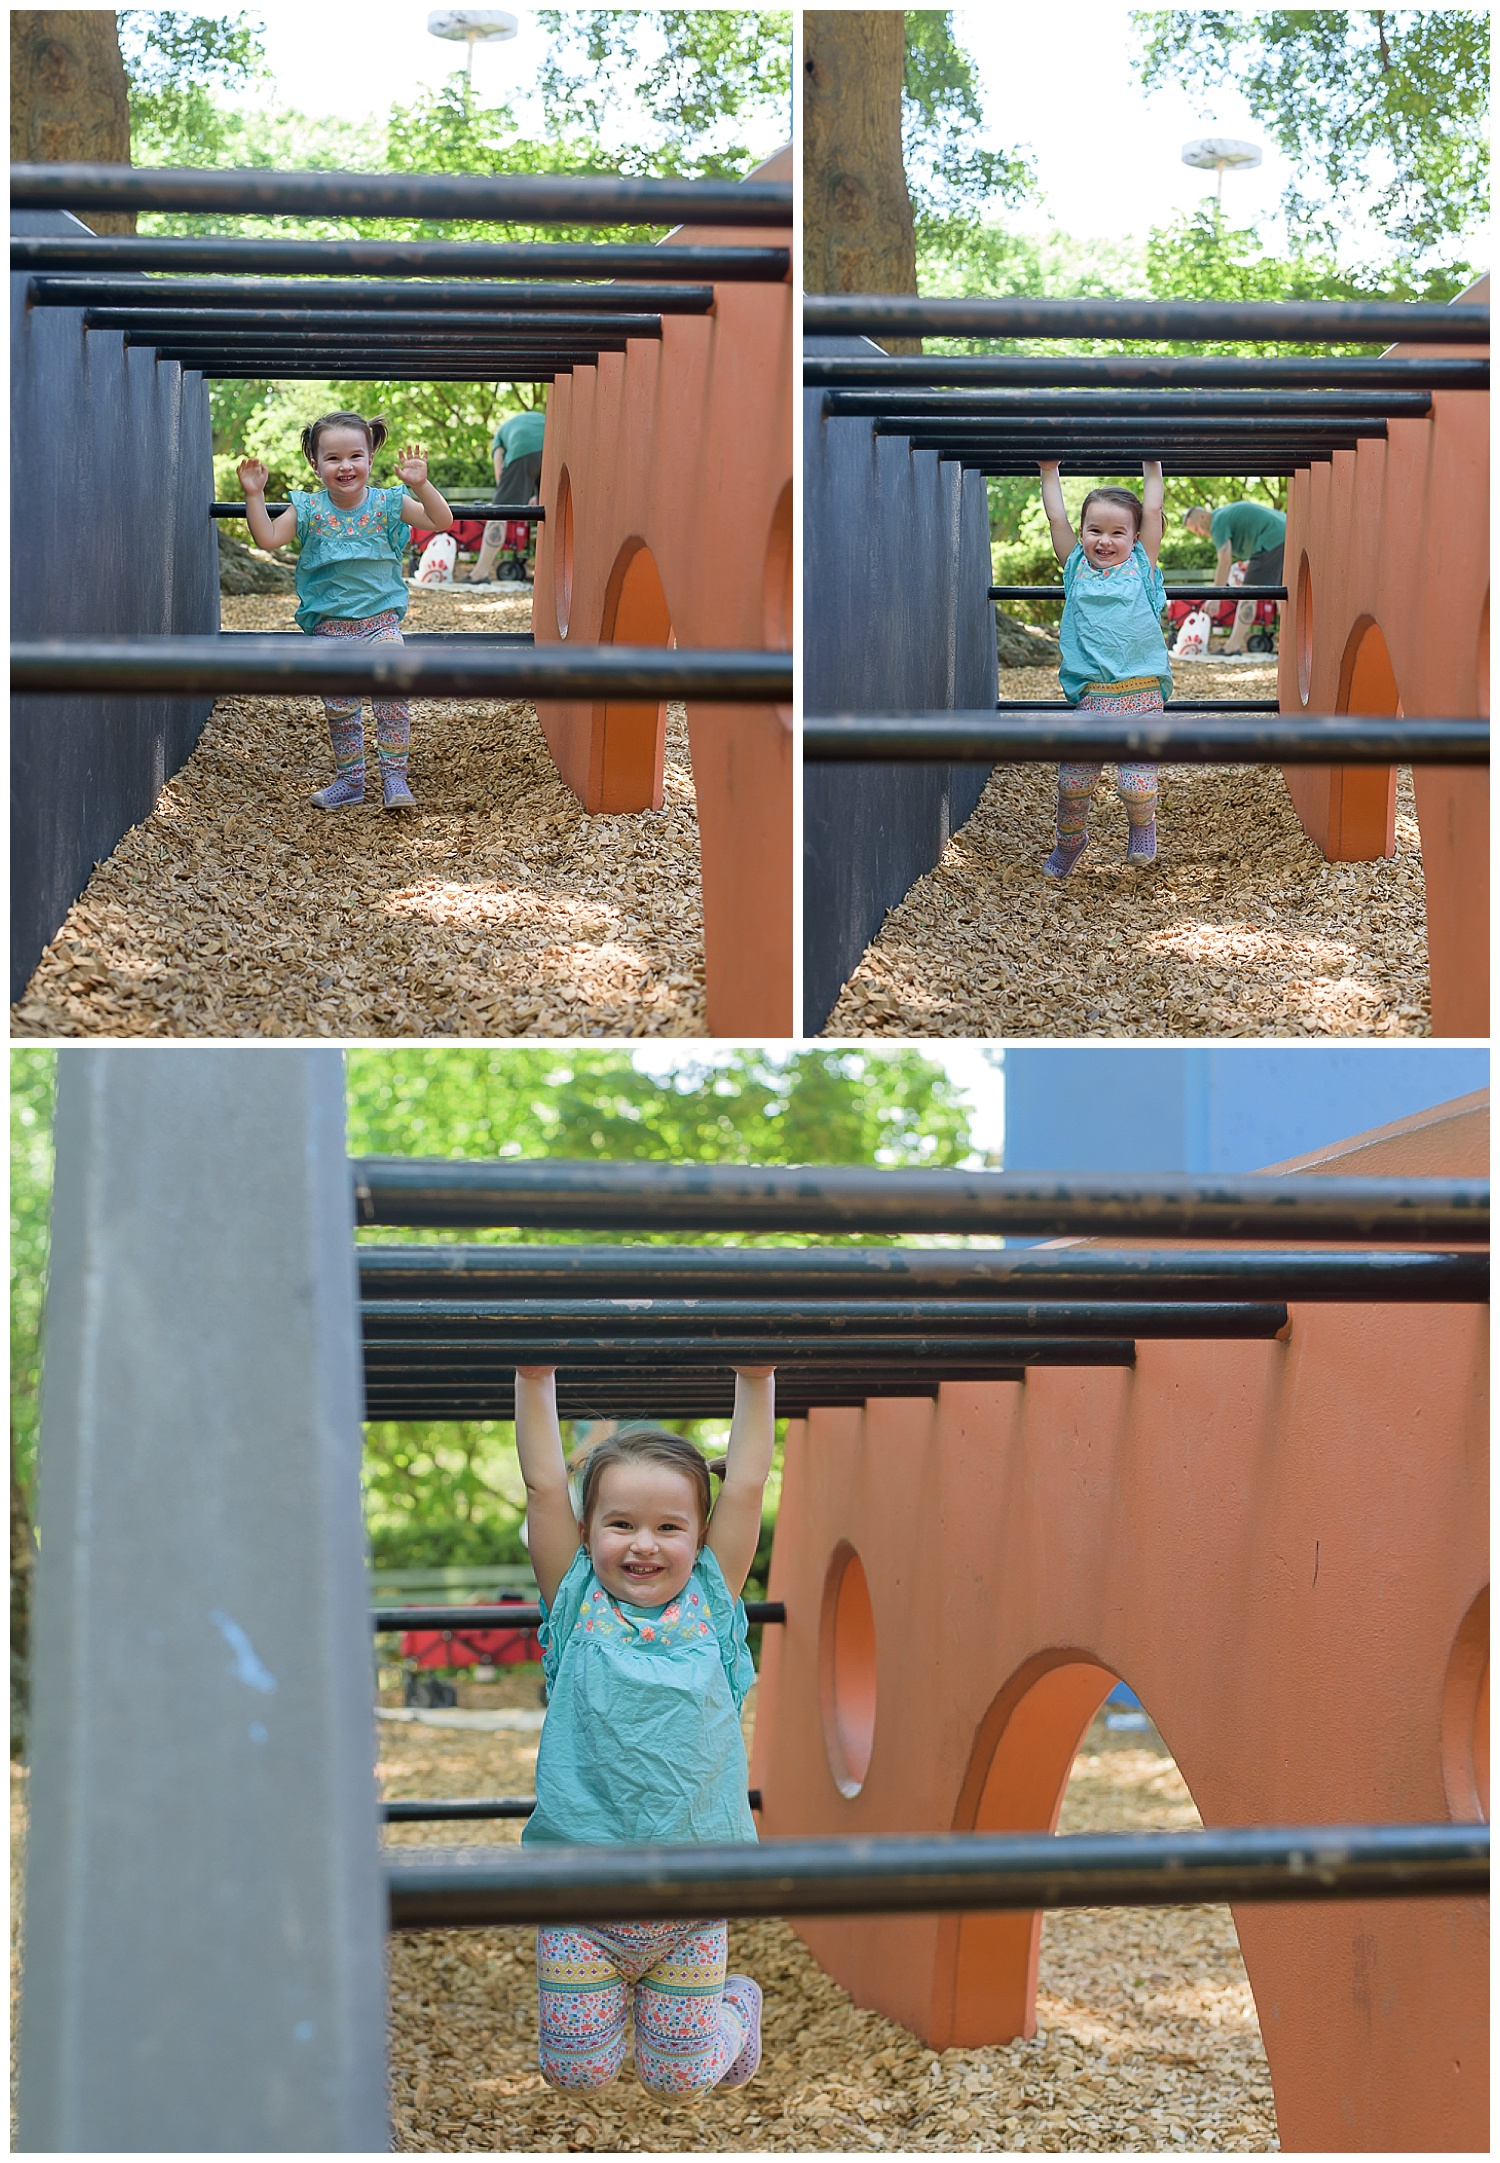 these are images of a toddler playing at a playground at piedmont park in atlanta georgia. she is swinging from the bars and laughing